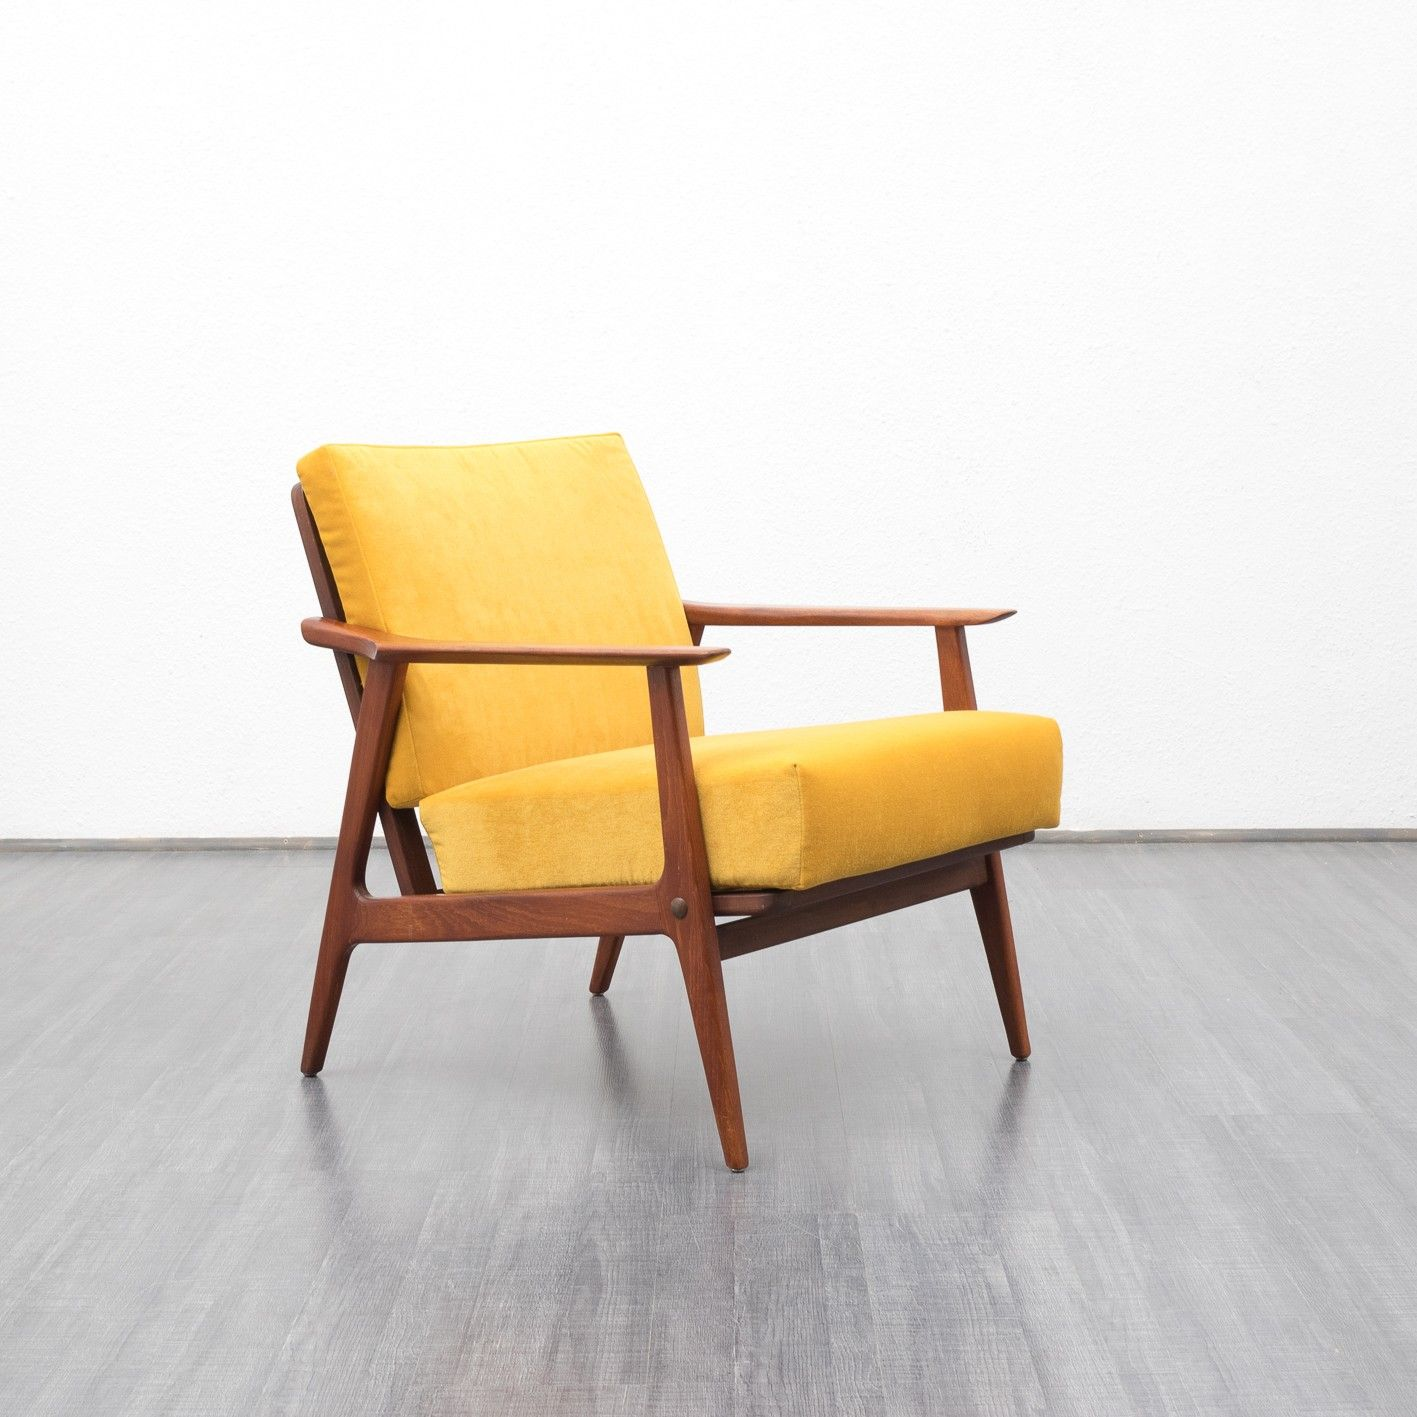 Scandinavian Teak Yellow Armchair Scandinavian Armchair Armchair Design Living Room Furniture Sofas